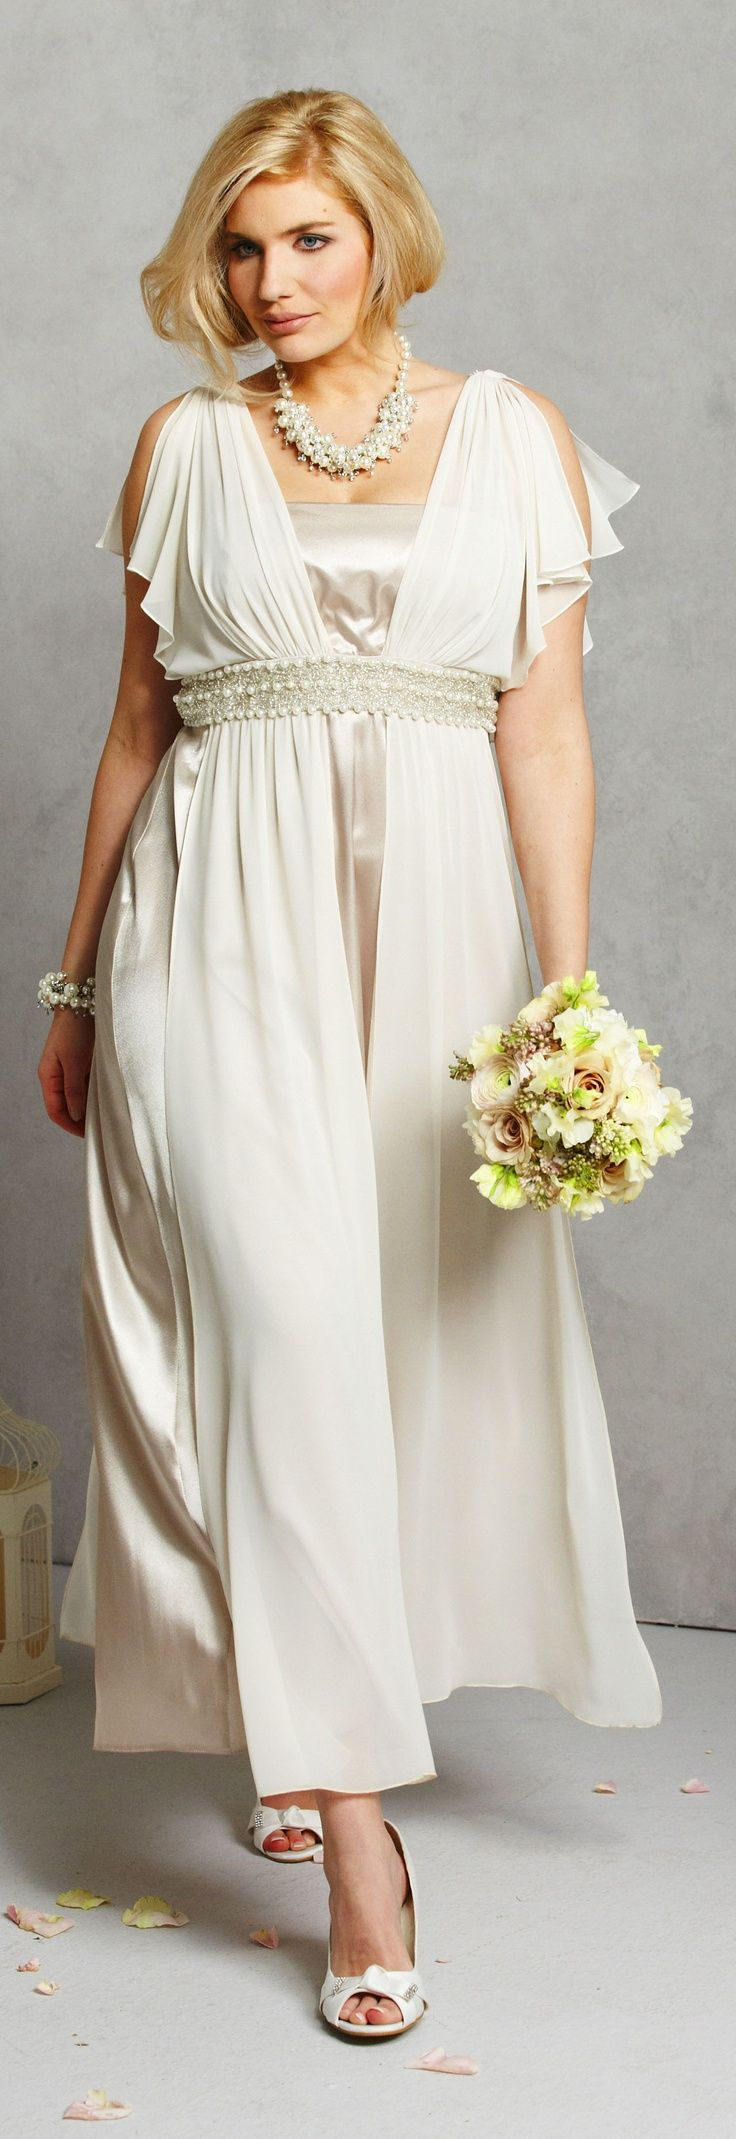 Top wedding dresses for celebration see more weddings